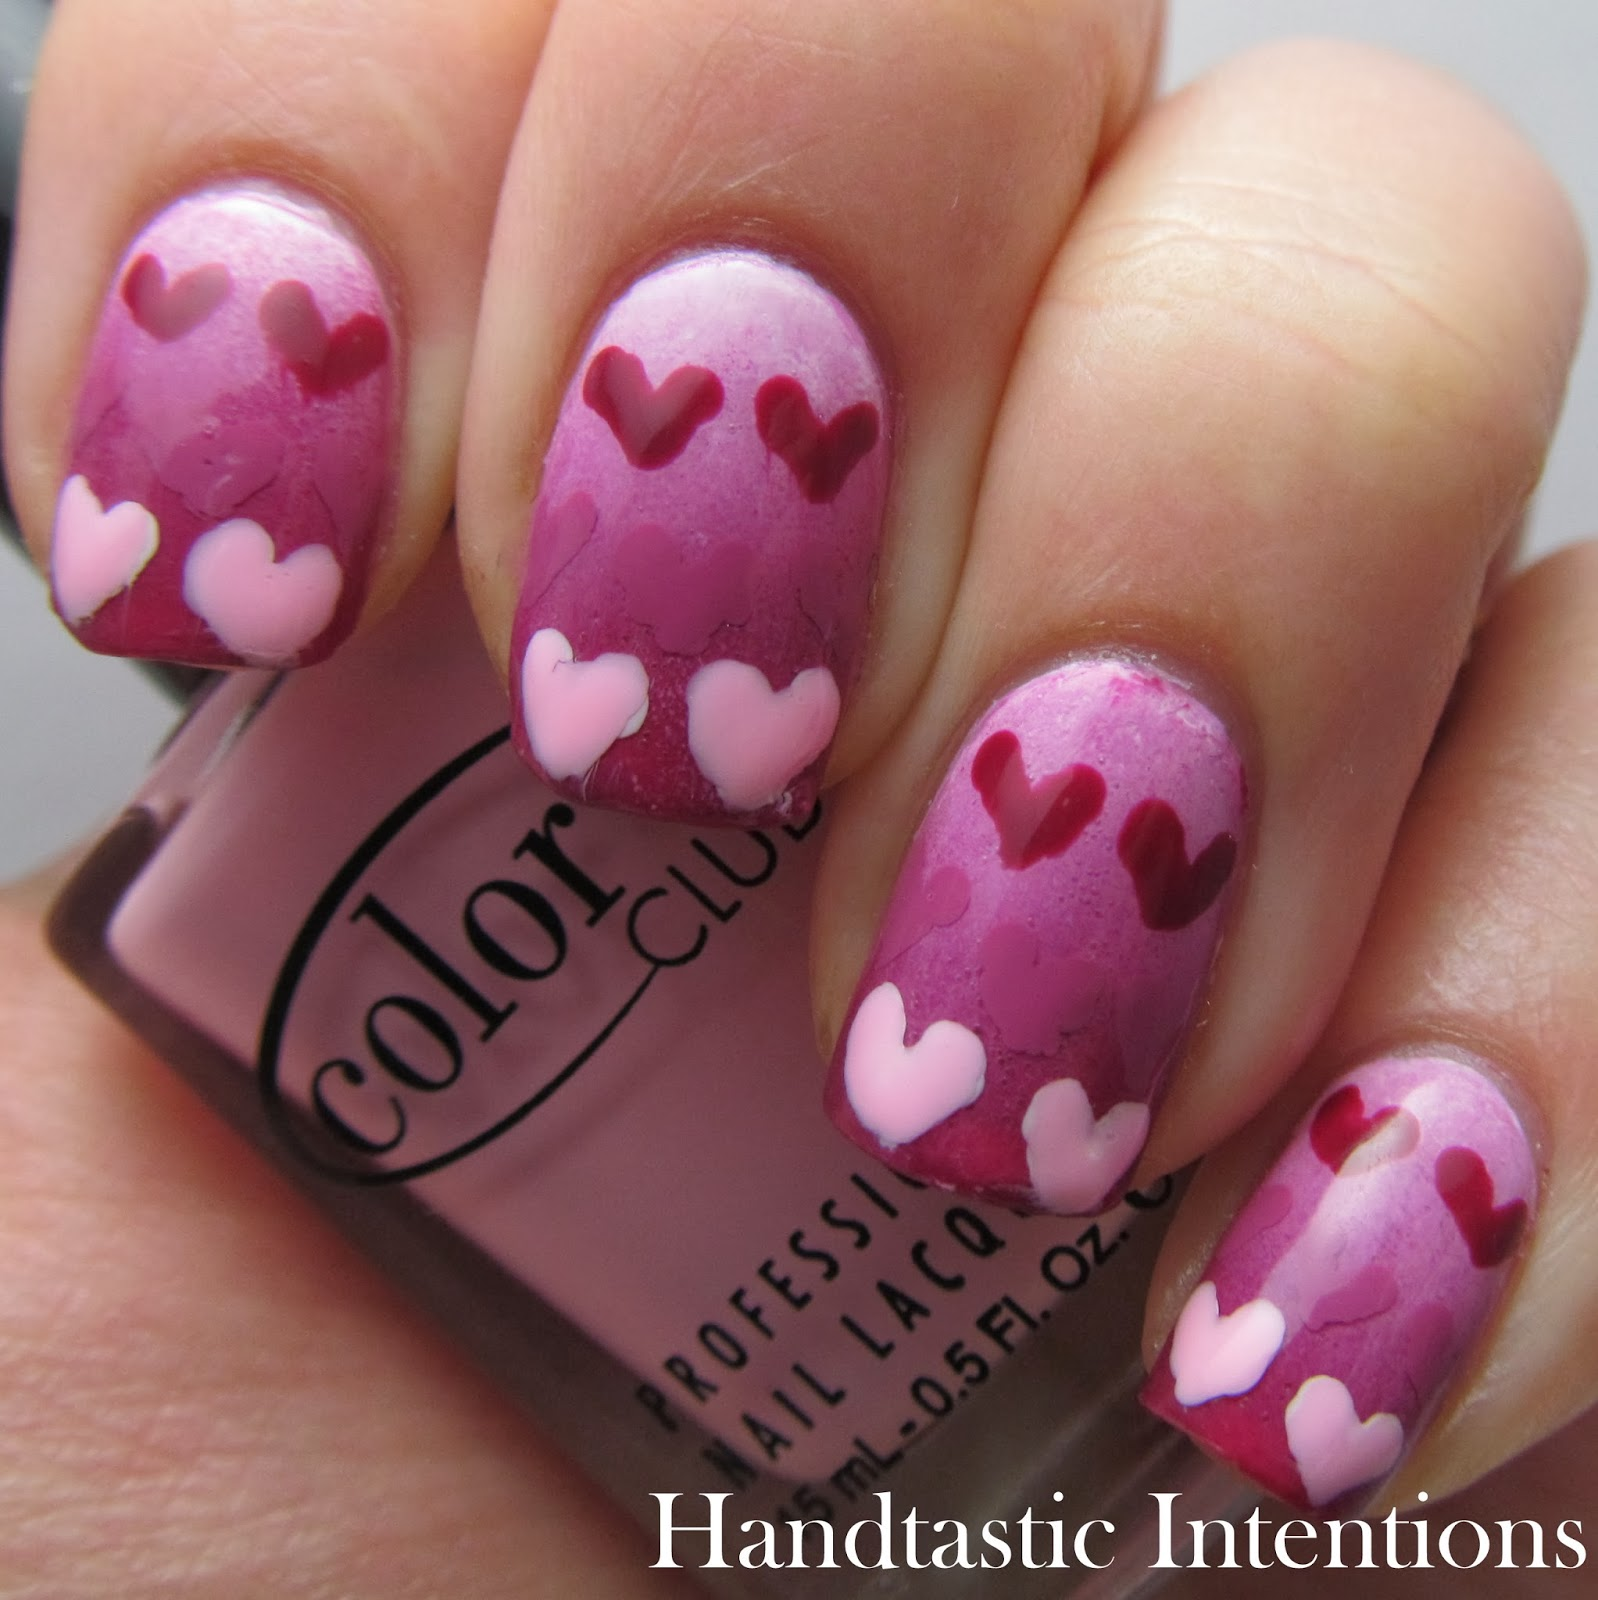 Heart Nail Art: Handtastic Intentions: Nail Art: Gradient Hearts